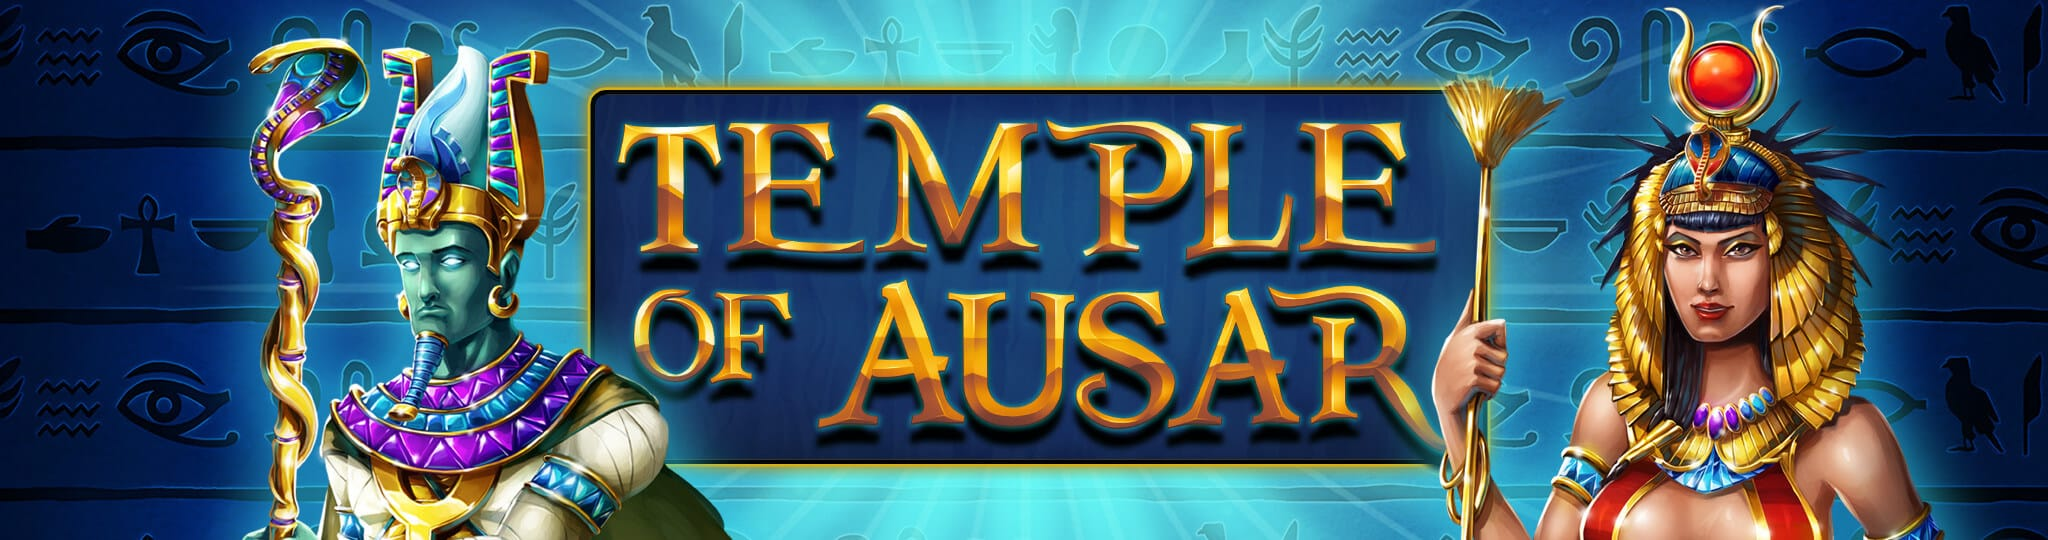 Temple of Ausar Logo